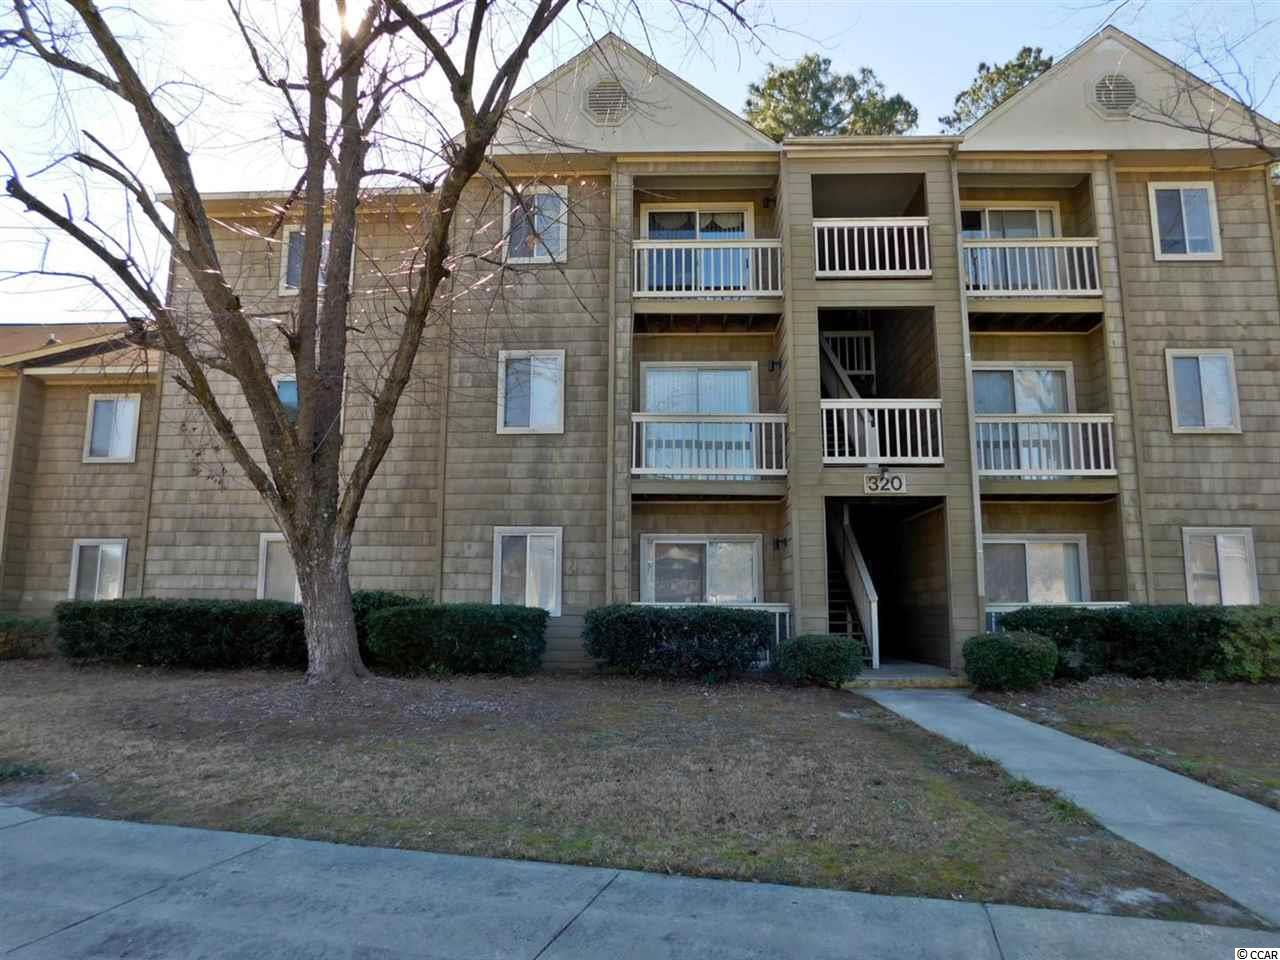 Condo / Townhome / Villa for Sale at 320 Myrtle Greens 320 Myrtle Greens Conway, South Carolina 29526 United States